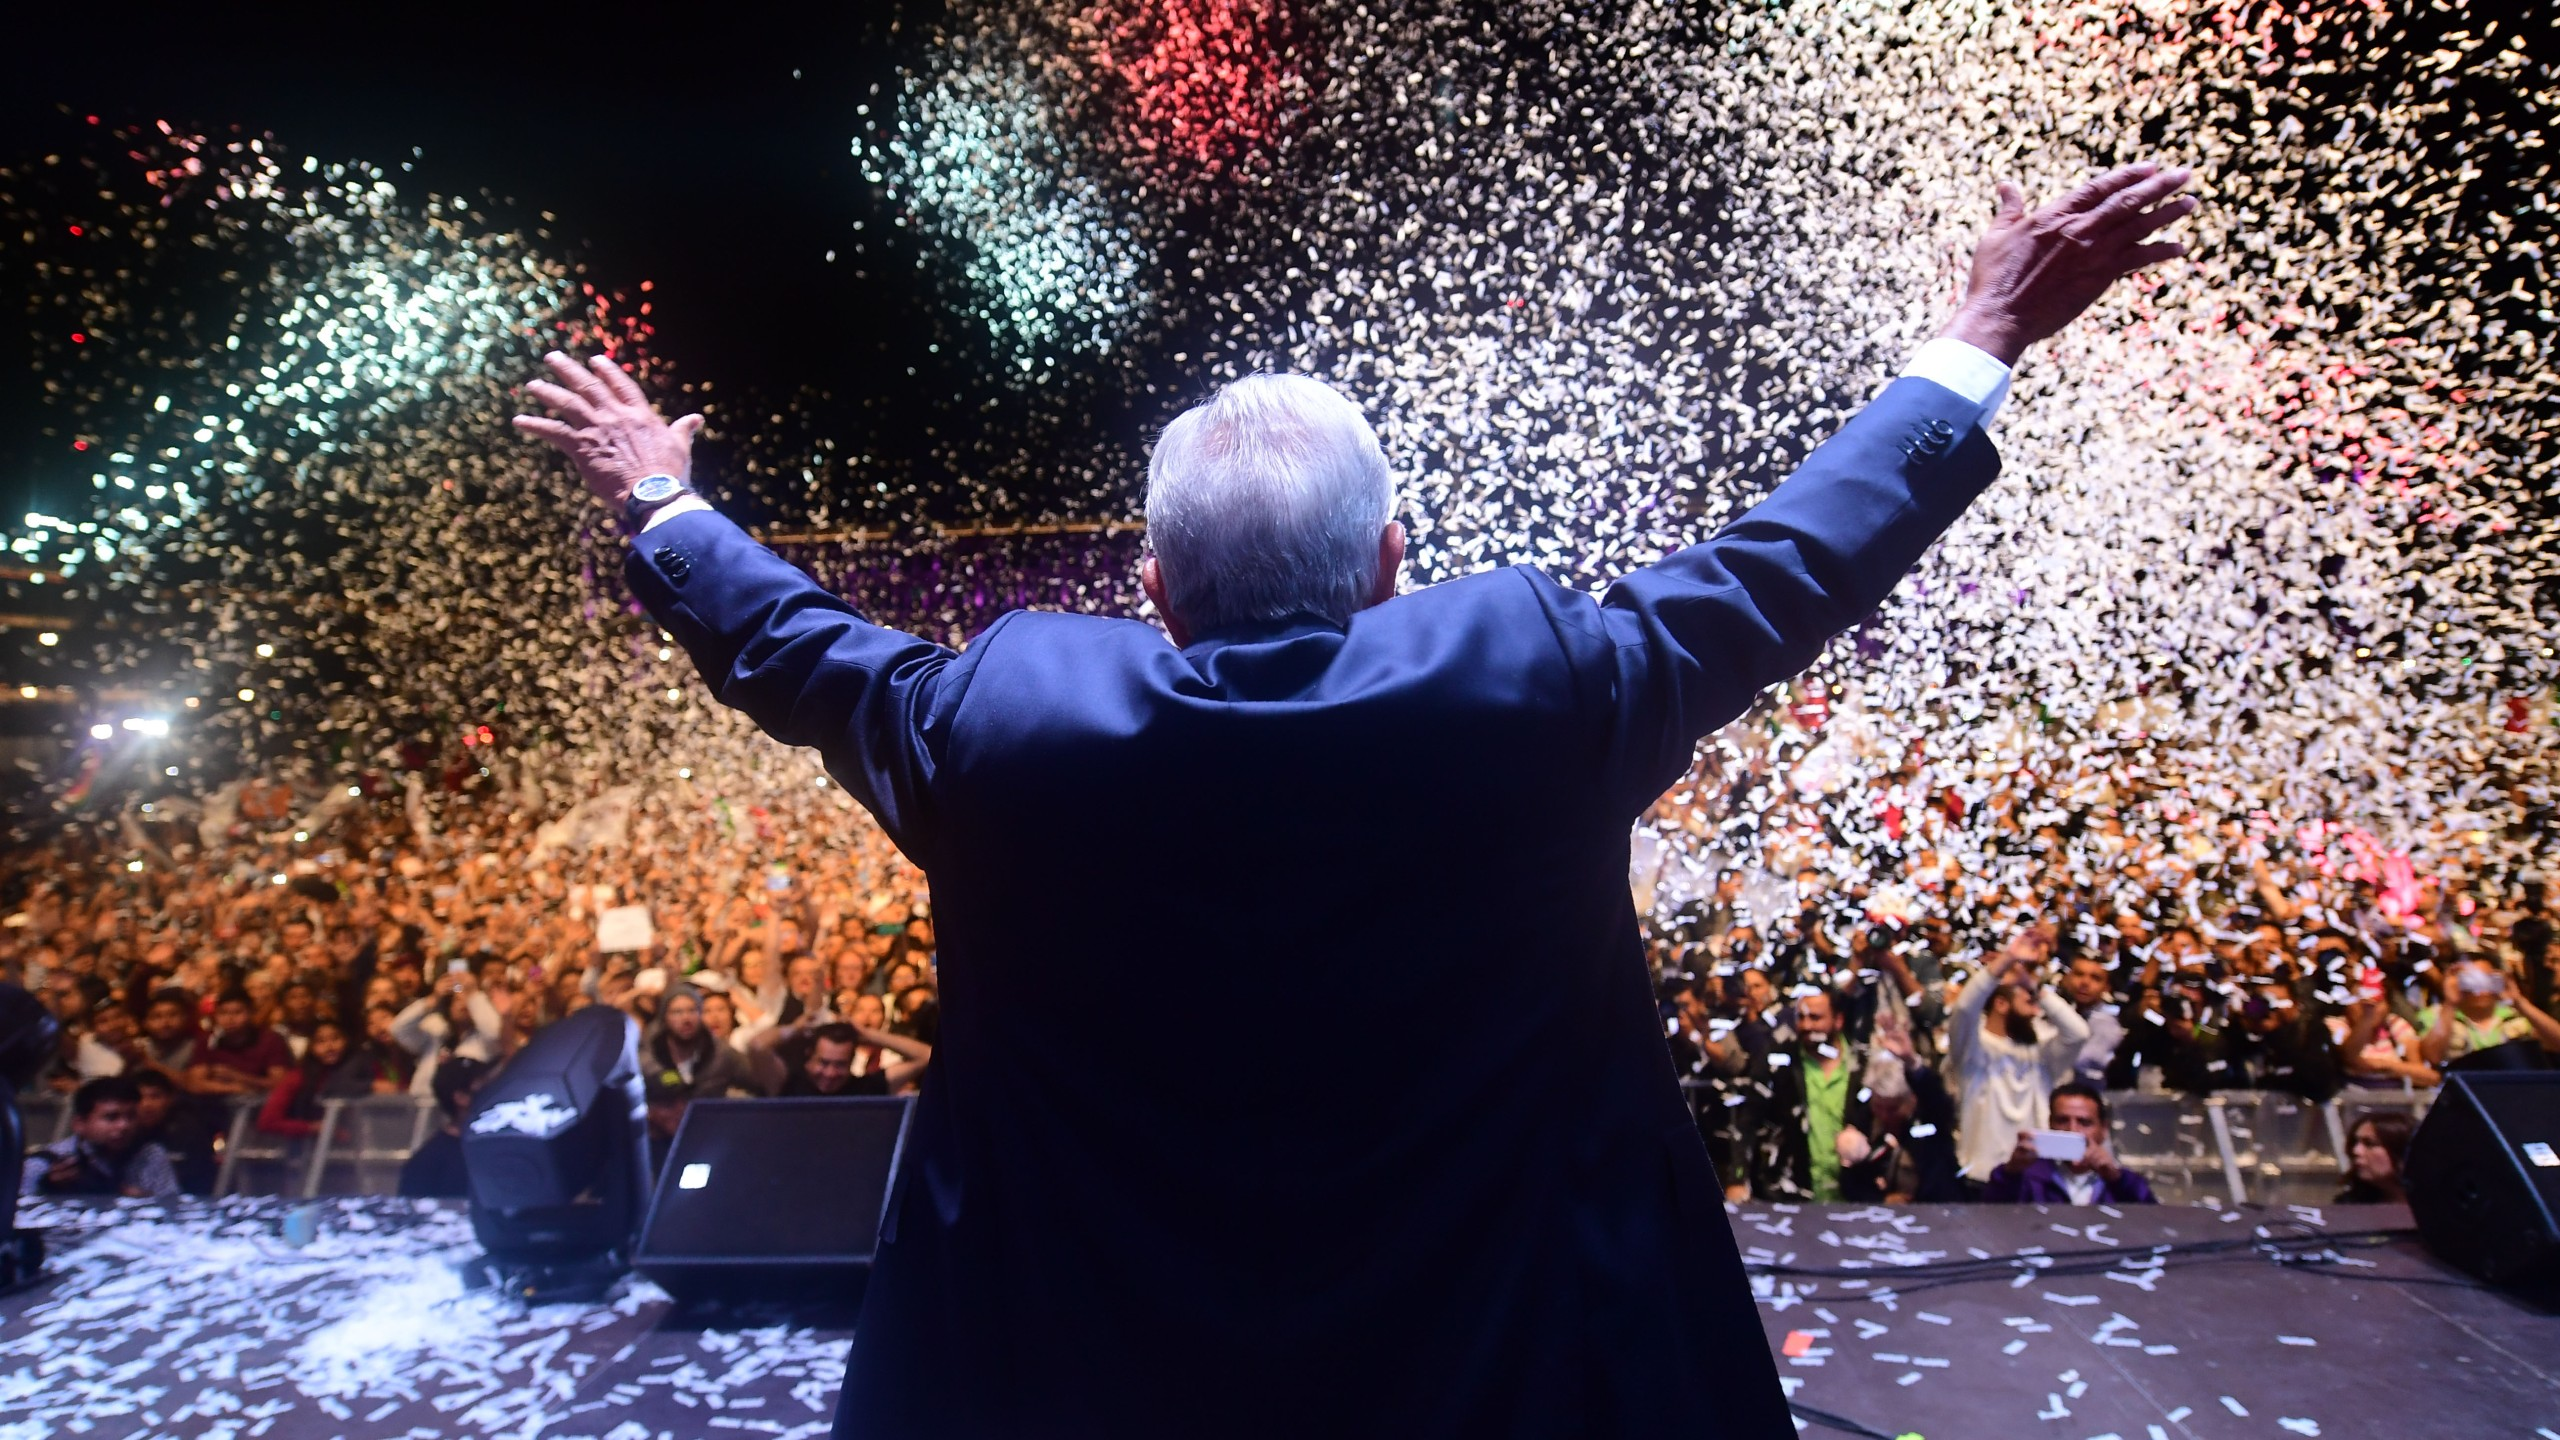 Newly elected Mexico's President Andres Manuel Lopez Obrador in Mexico City, on July 1, 2018. (Credit: PEDRO PARDO/AFP/Getty Images)